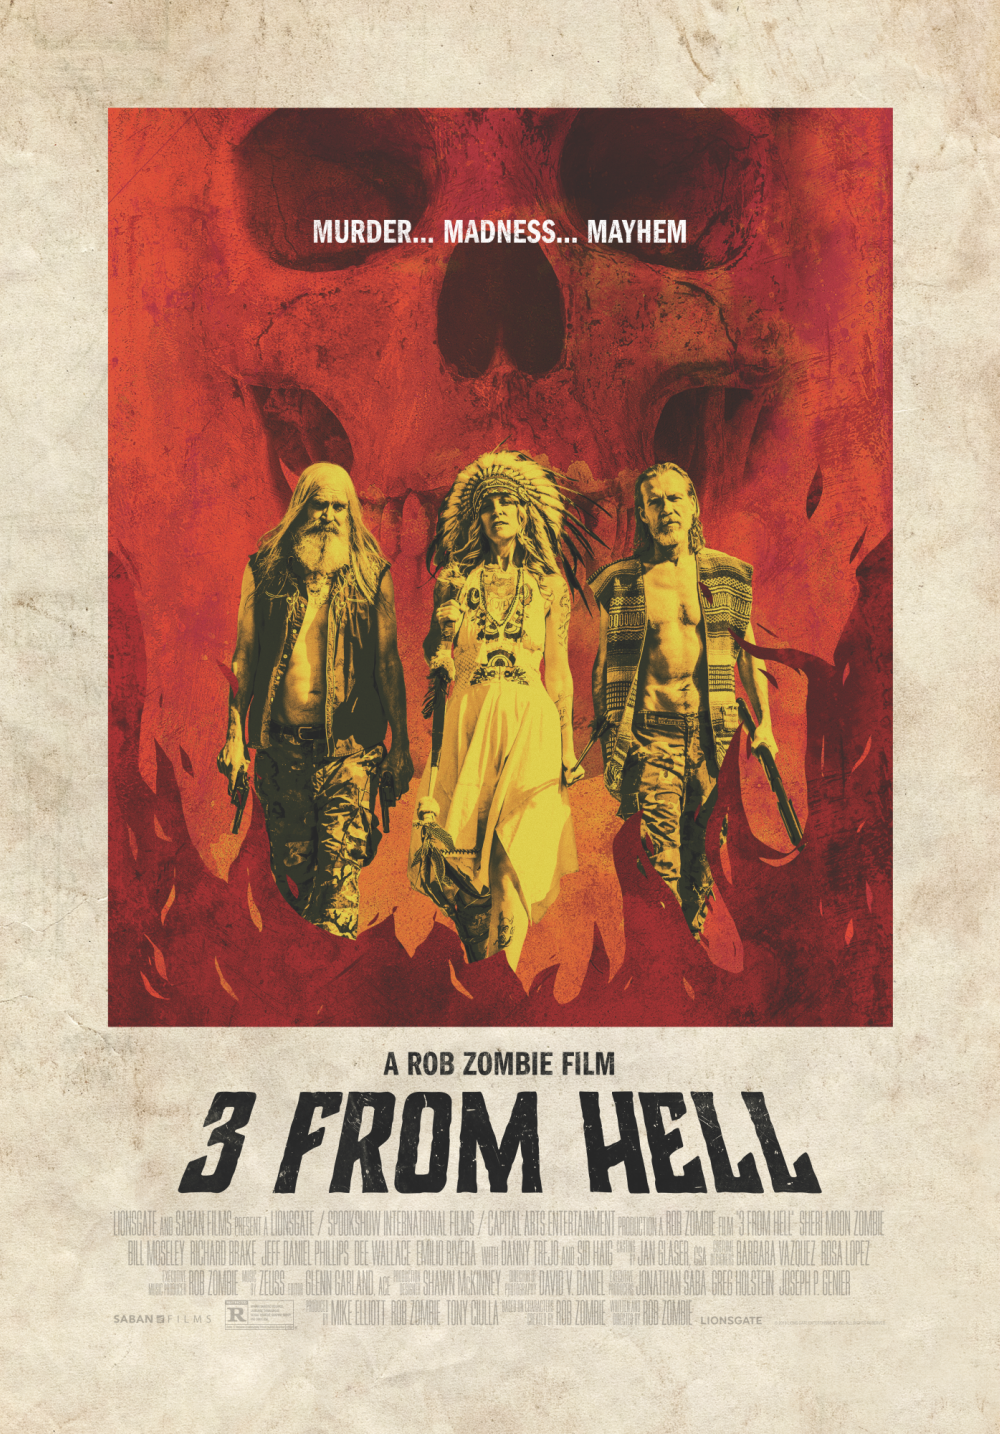 three from hell poster august 2019 - Check Out the Latest Grindhouse Style Poster for Rob Zombie's 3 FROM HELL